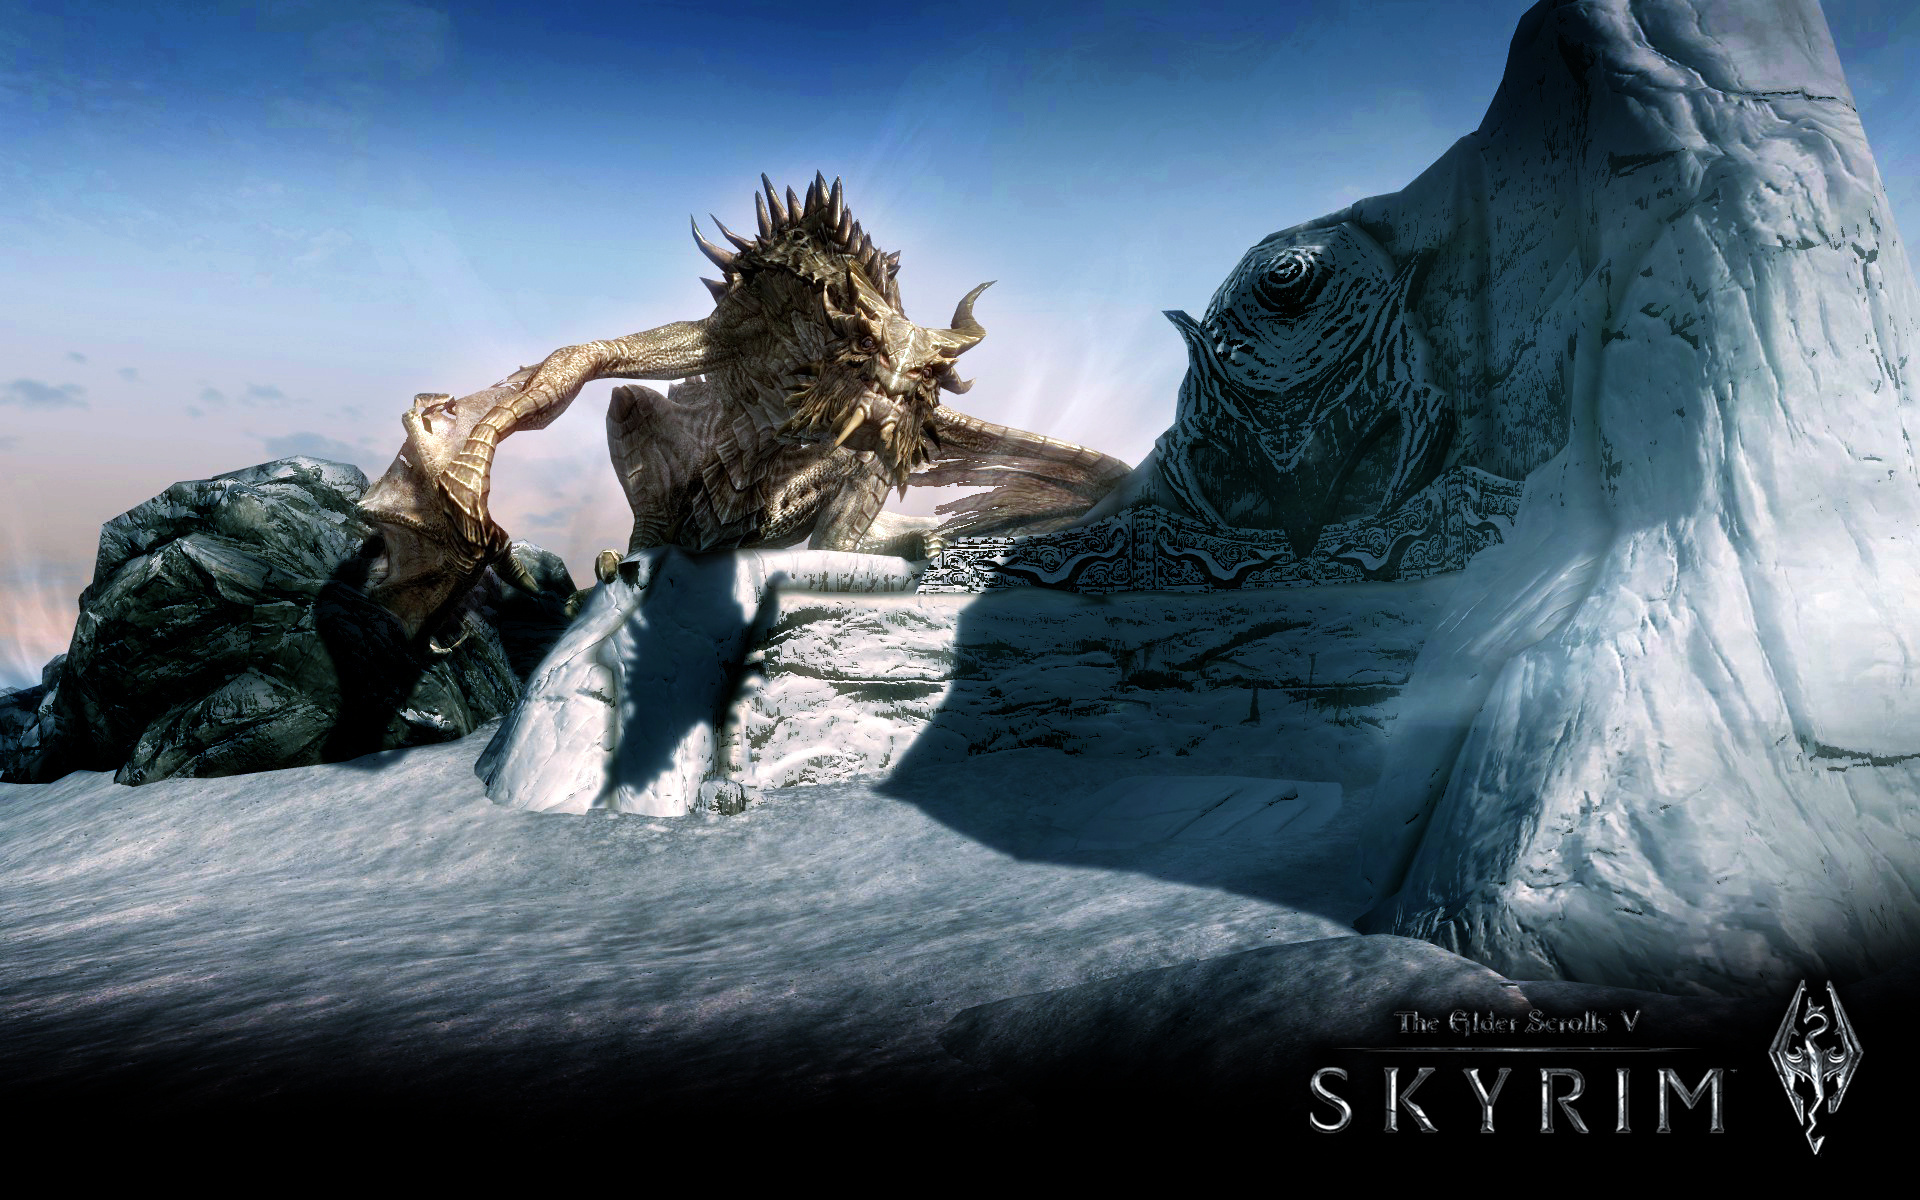 Wallpaper The Elder Scrolls V: Skyrim dragon in the mountains